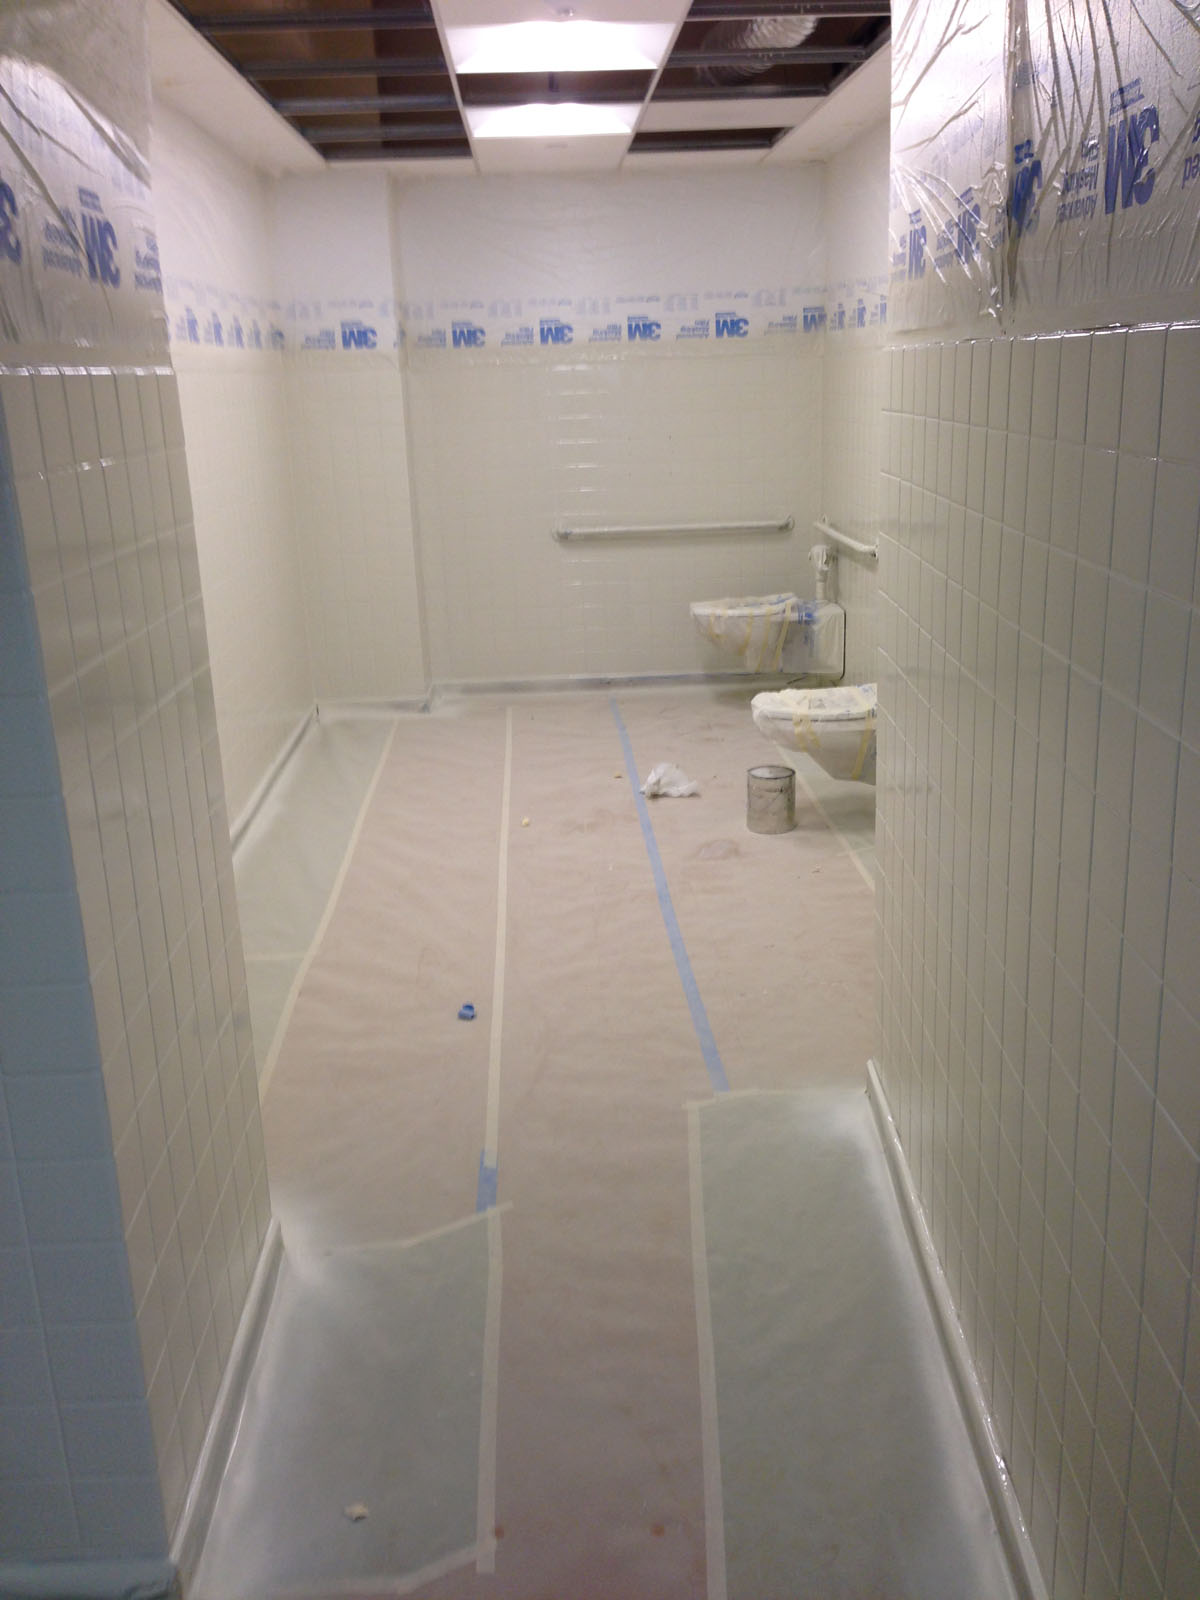 60 State St. Boston - Hotel public bathroom after refinishing